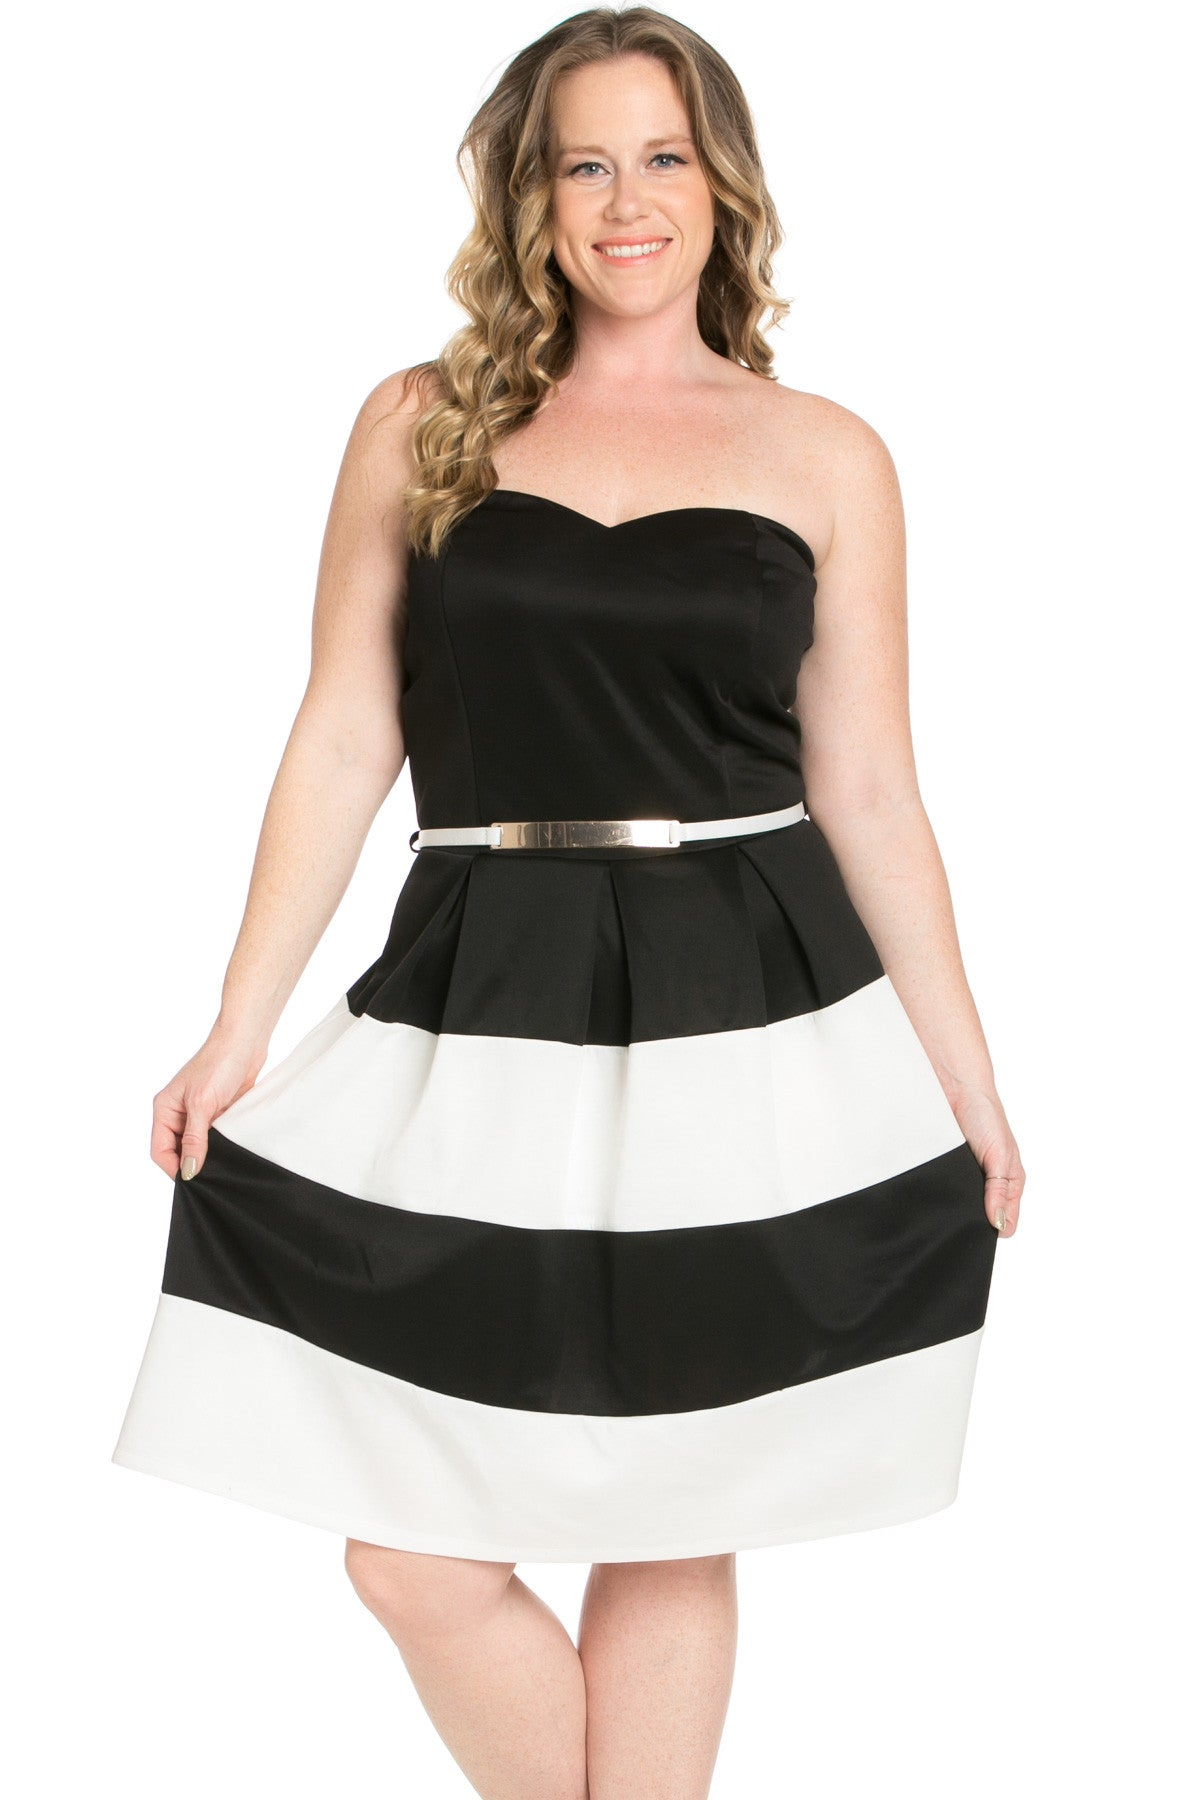 Sweetheart Color Block in Black Tube Dress with Belt - Dresses - My Yuccie - 3